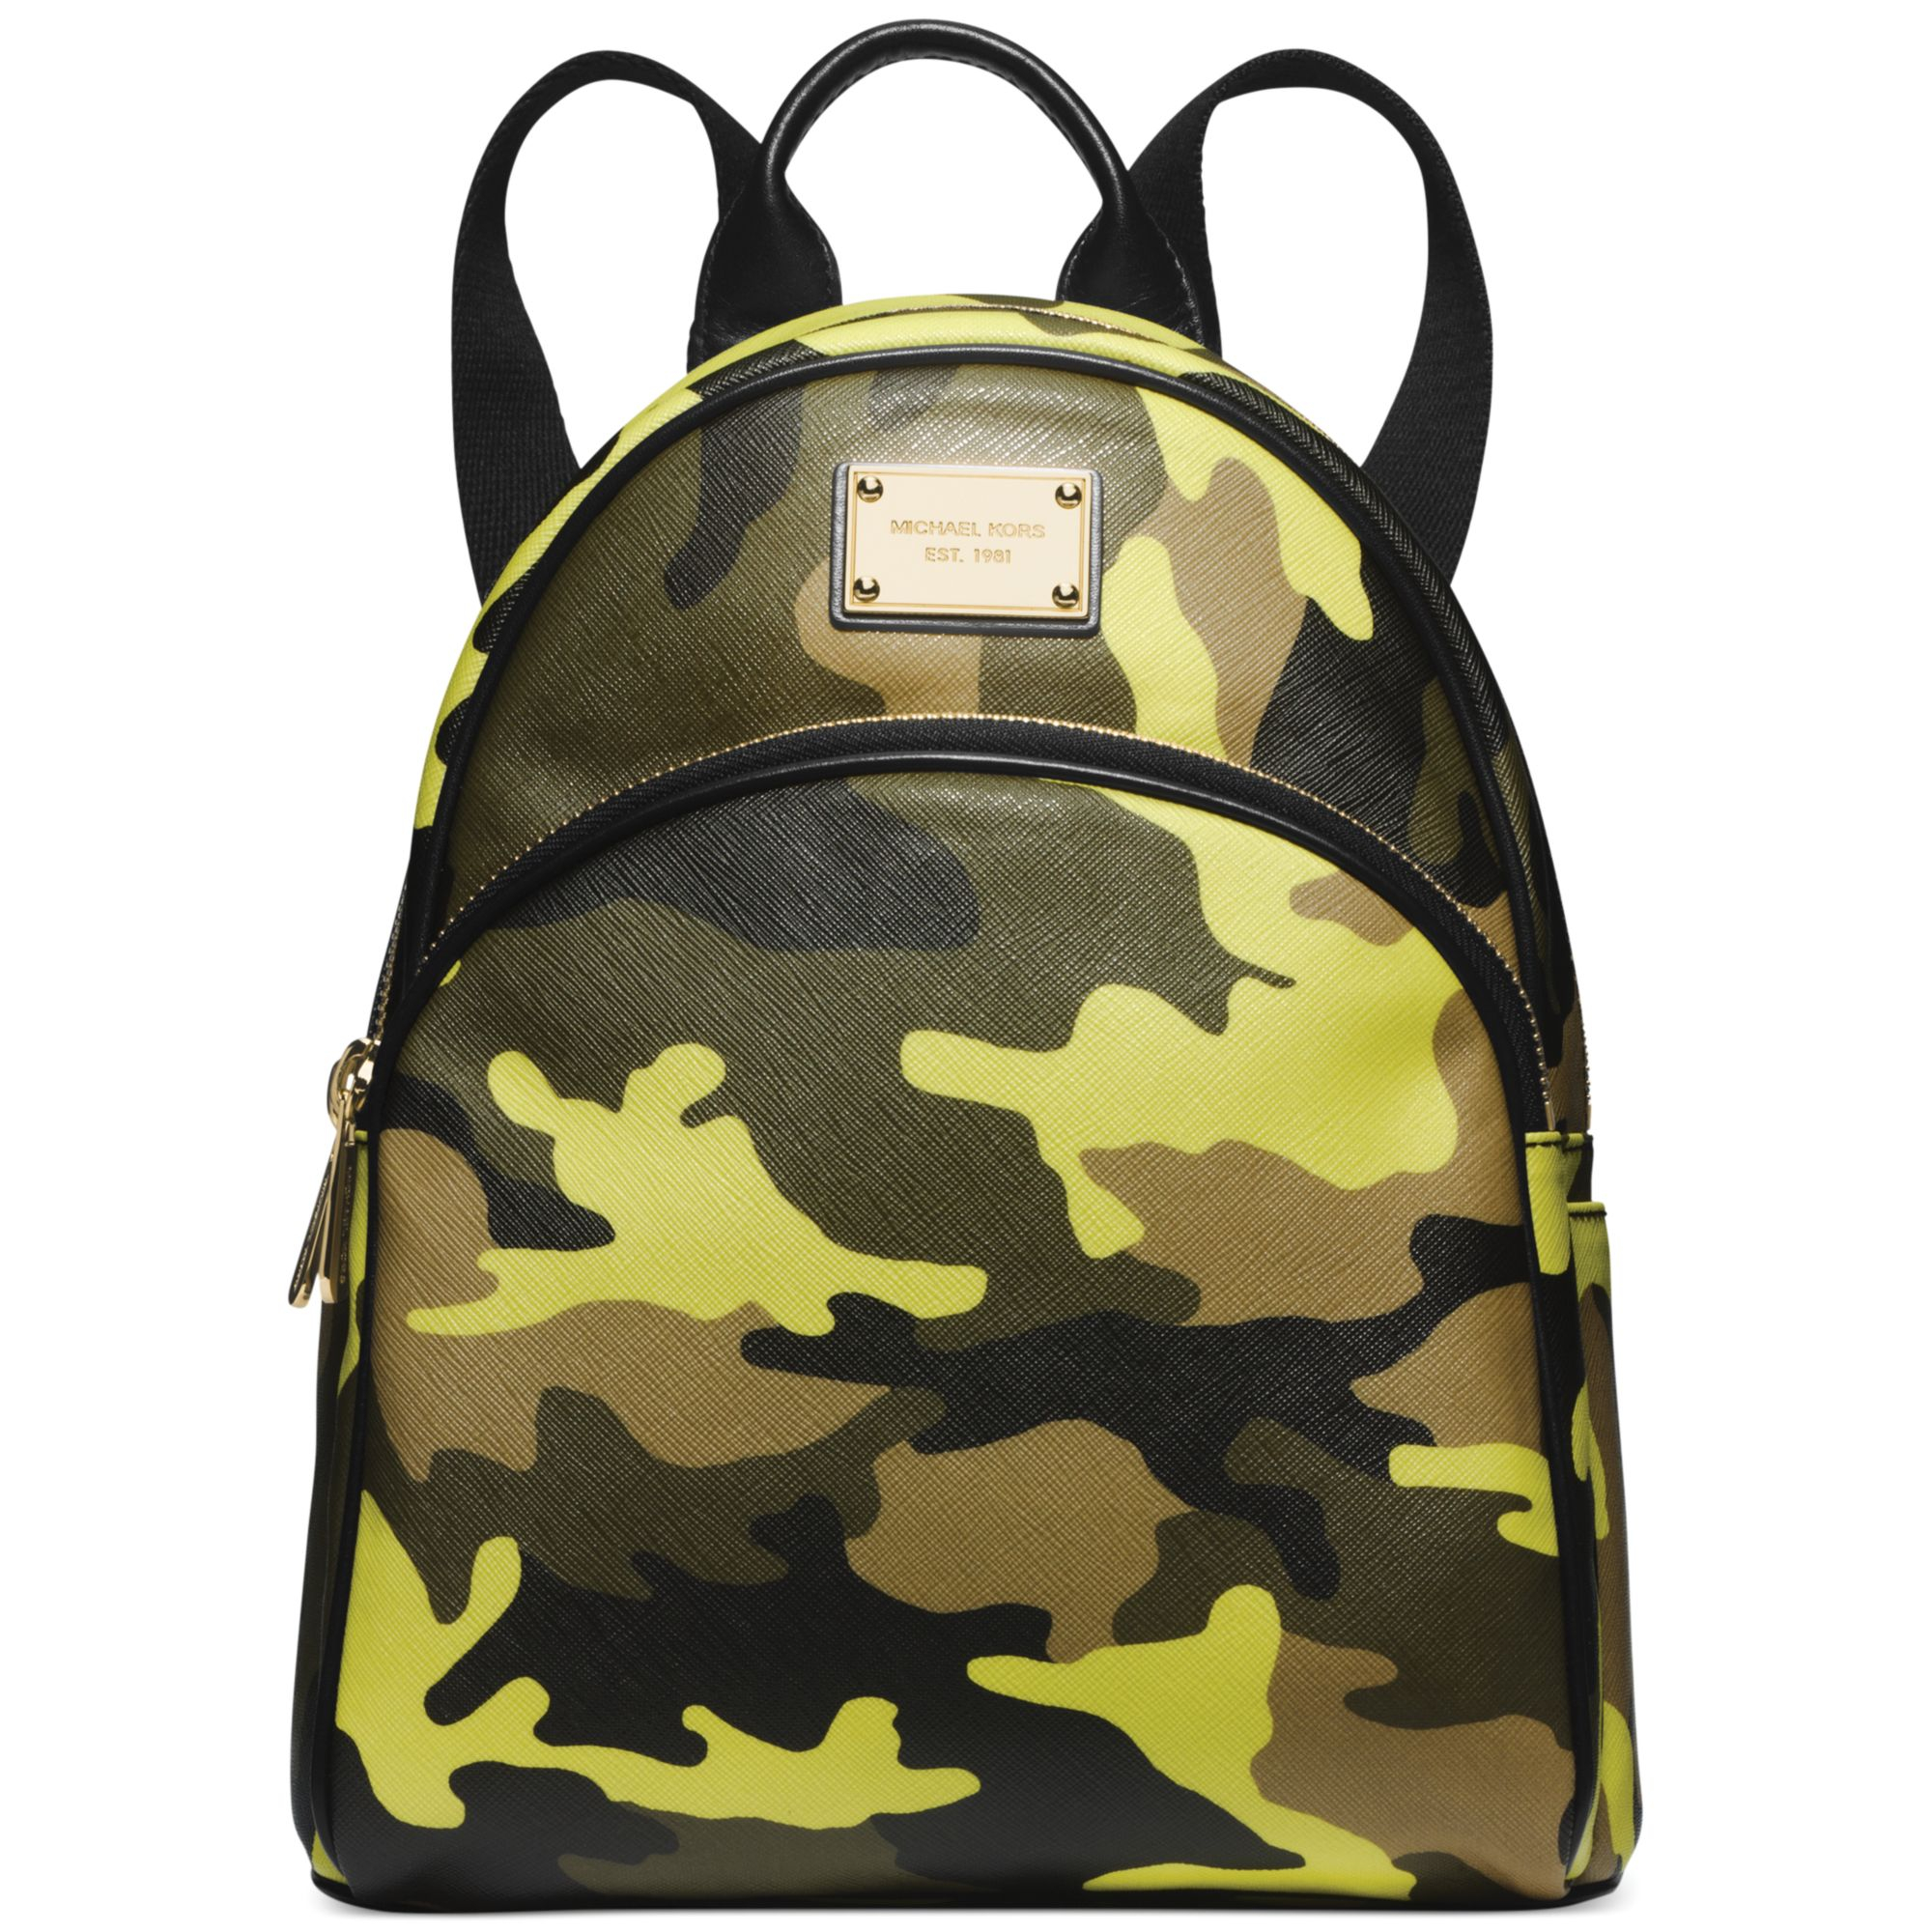 michael kors michael small camo backpack in green acid. Black Bedroom Furniture Sets. Home Design Ideas